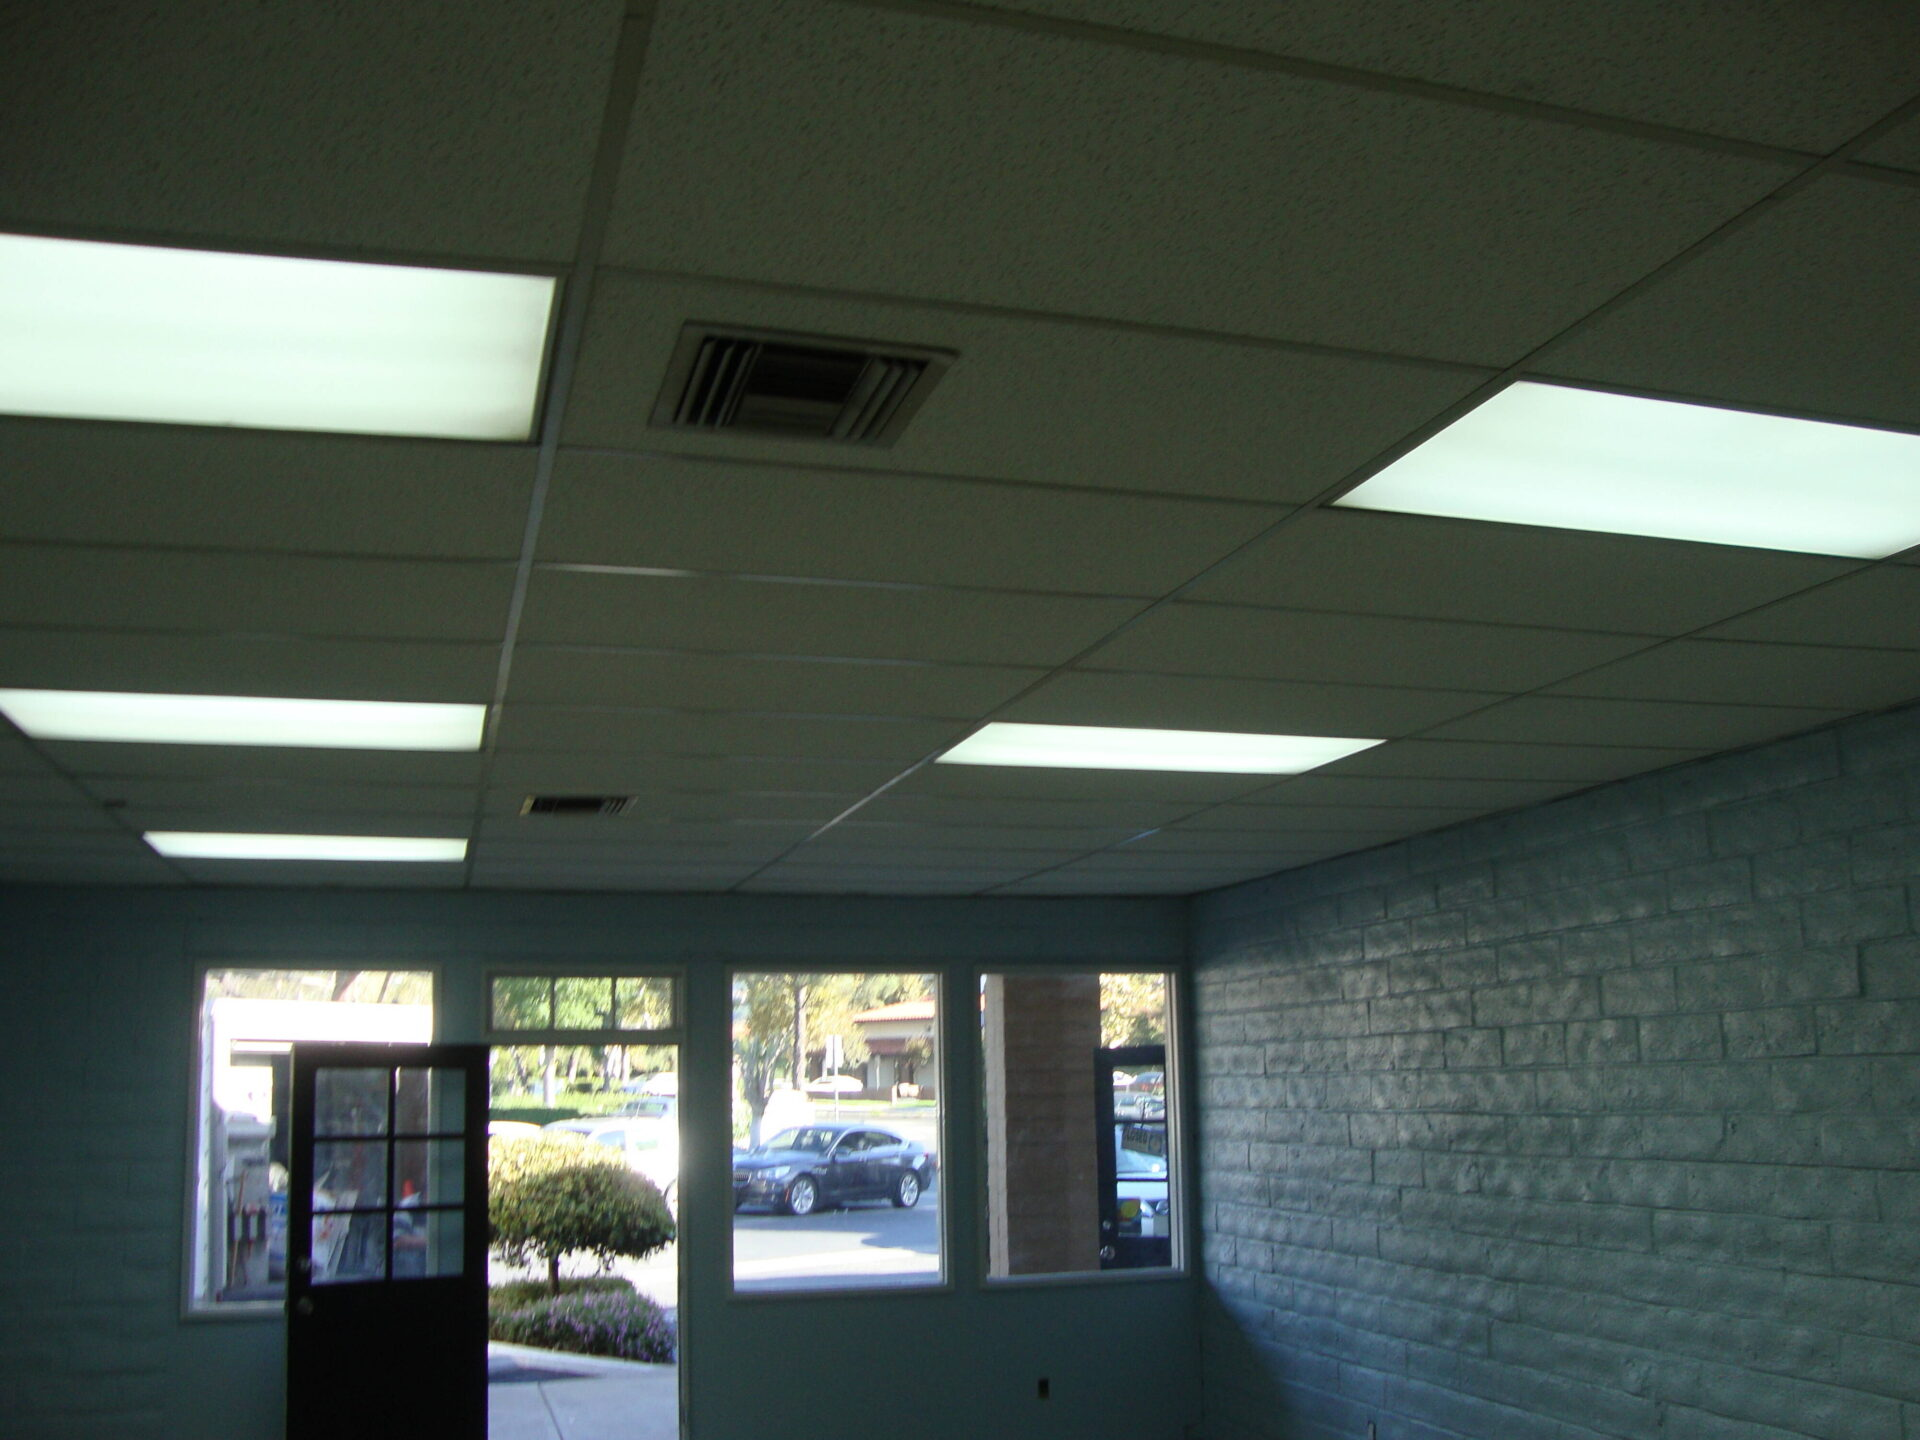 Drop Ceiling Tile Installs T Bar Ceiling Grid Repairs Replacement - Ceiling tile repair kit